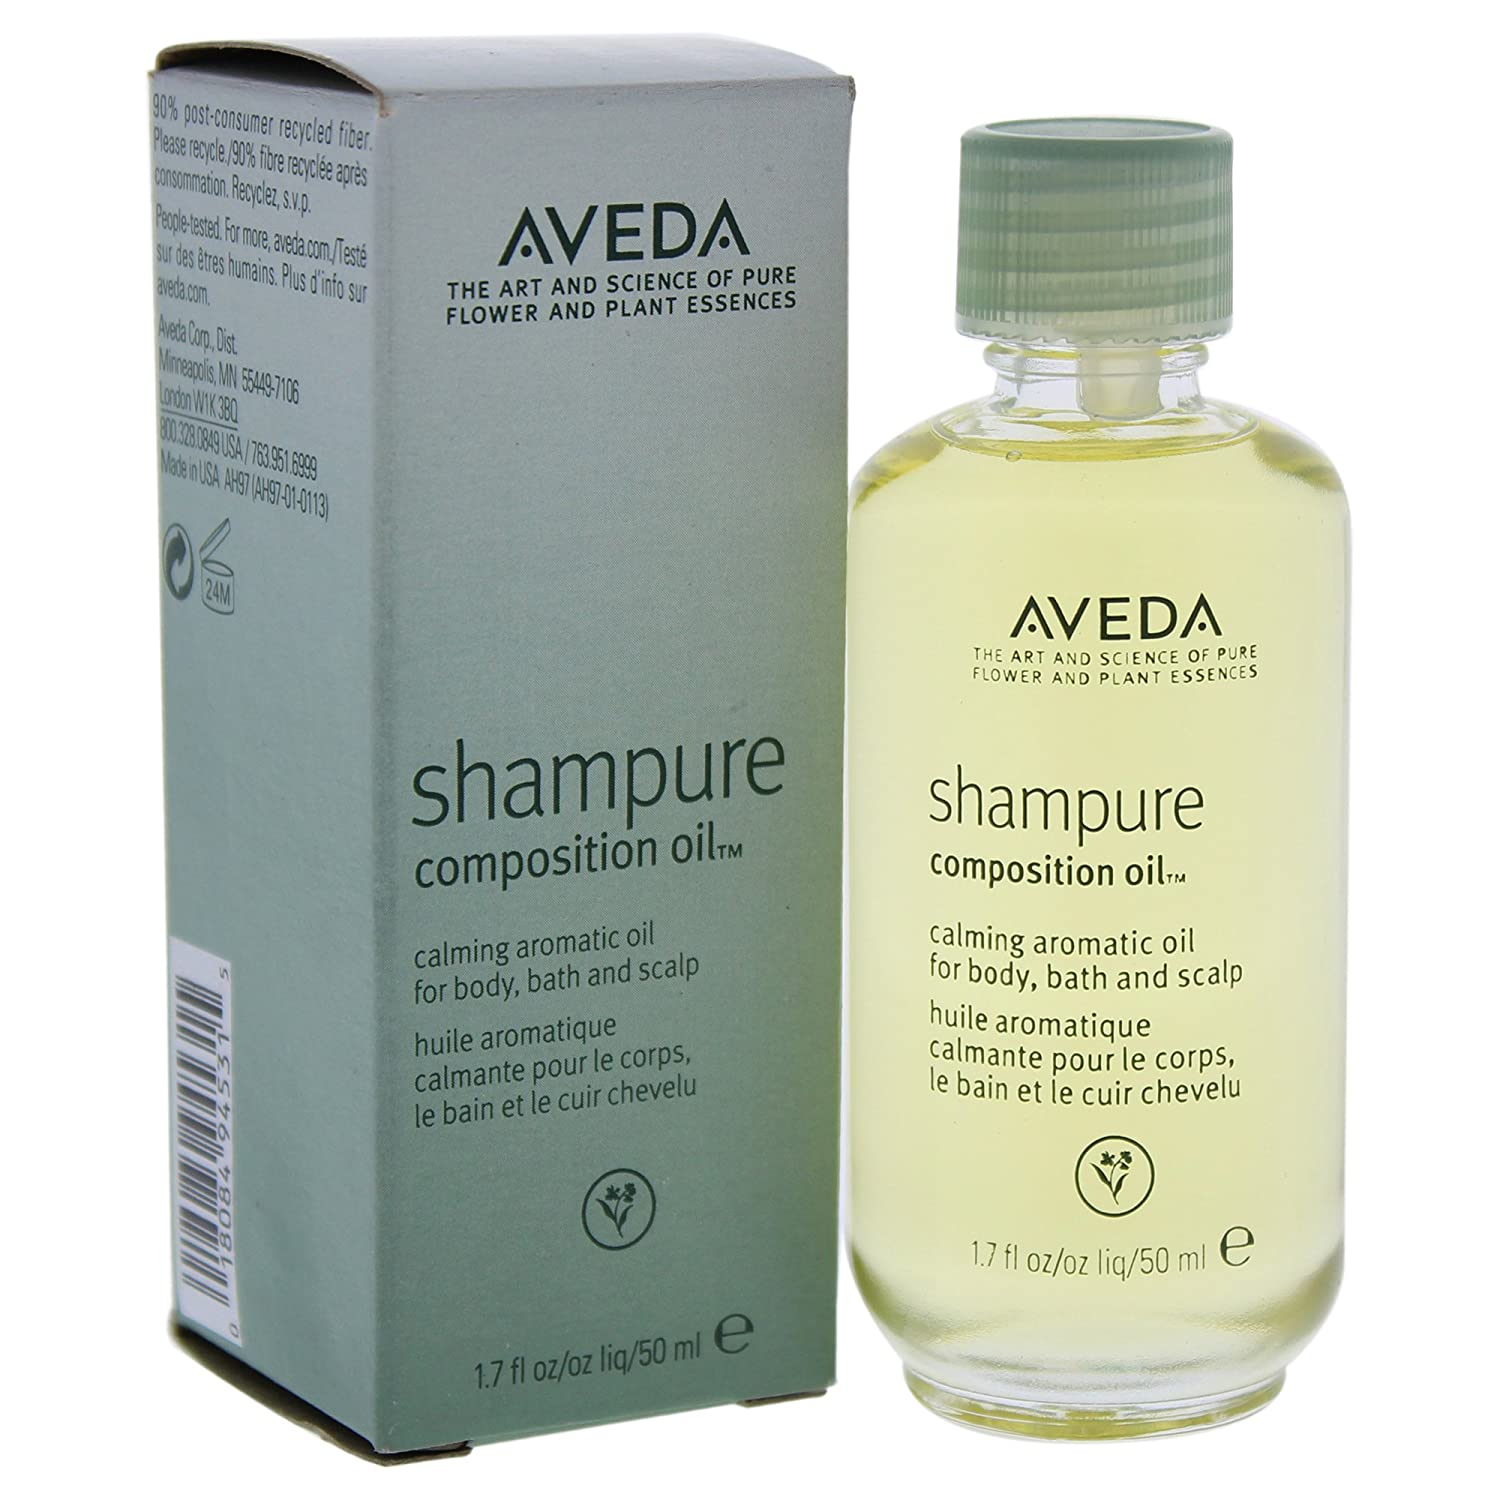 Aveda Shampure Composition Calming Aromatic Oil For Body Bath and Scalp 1.7 oz